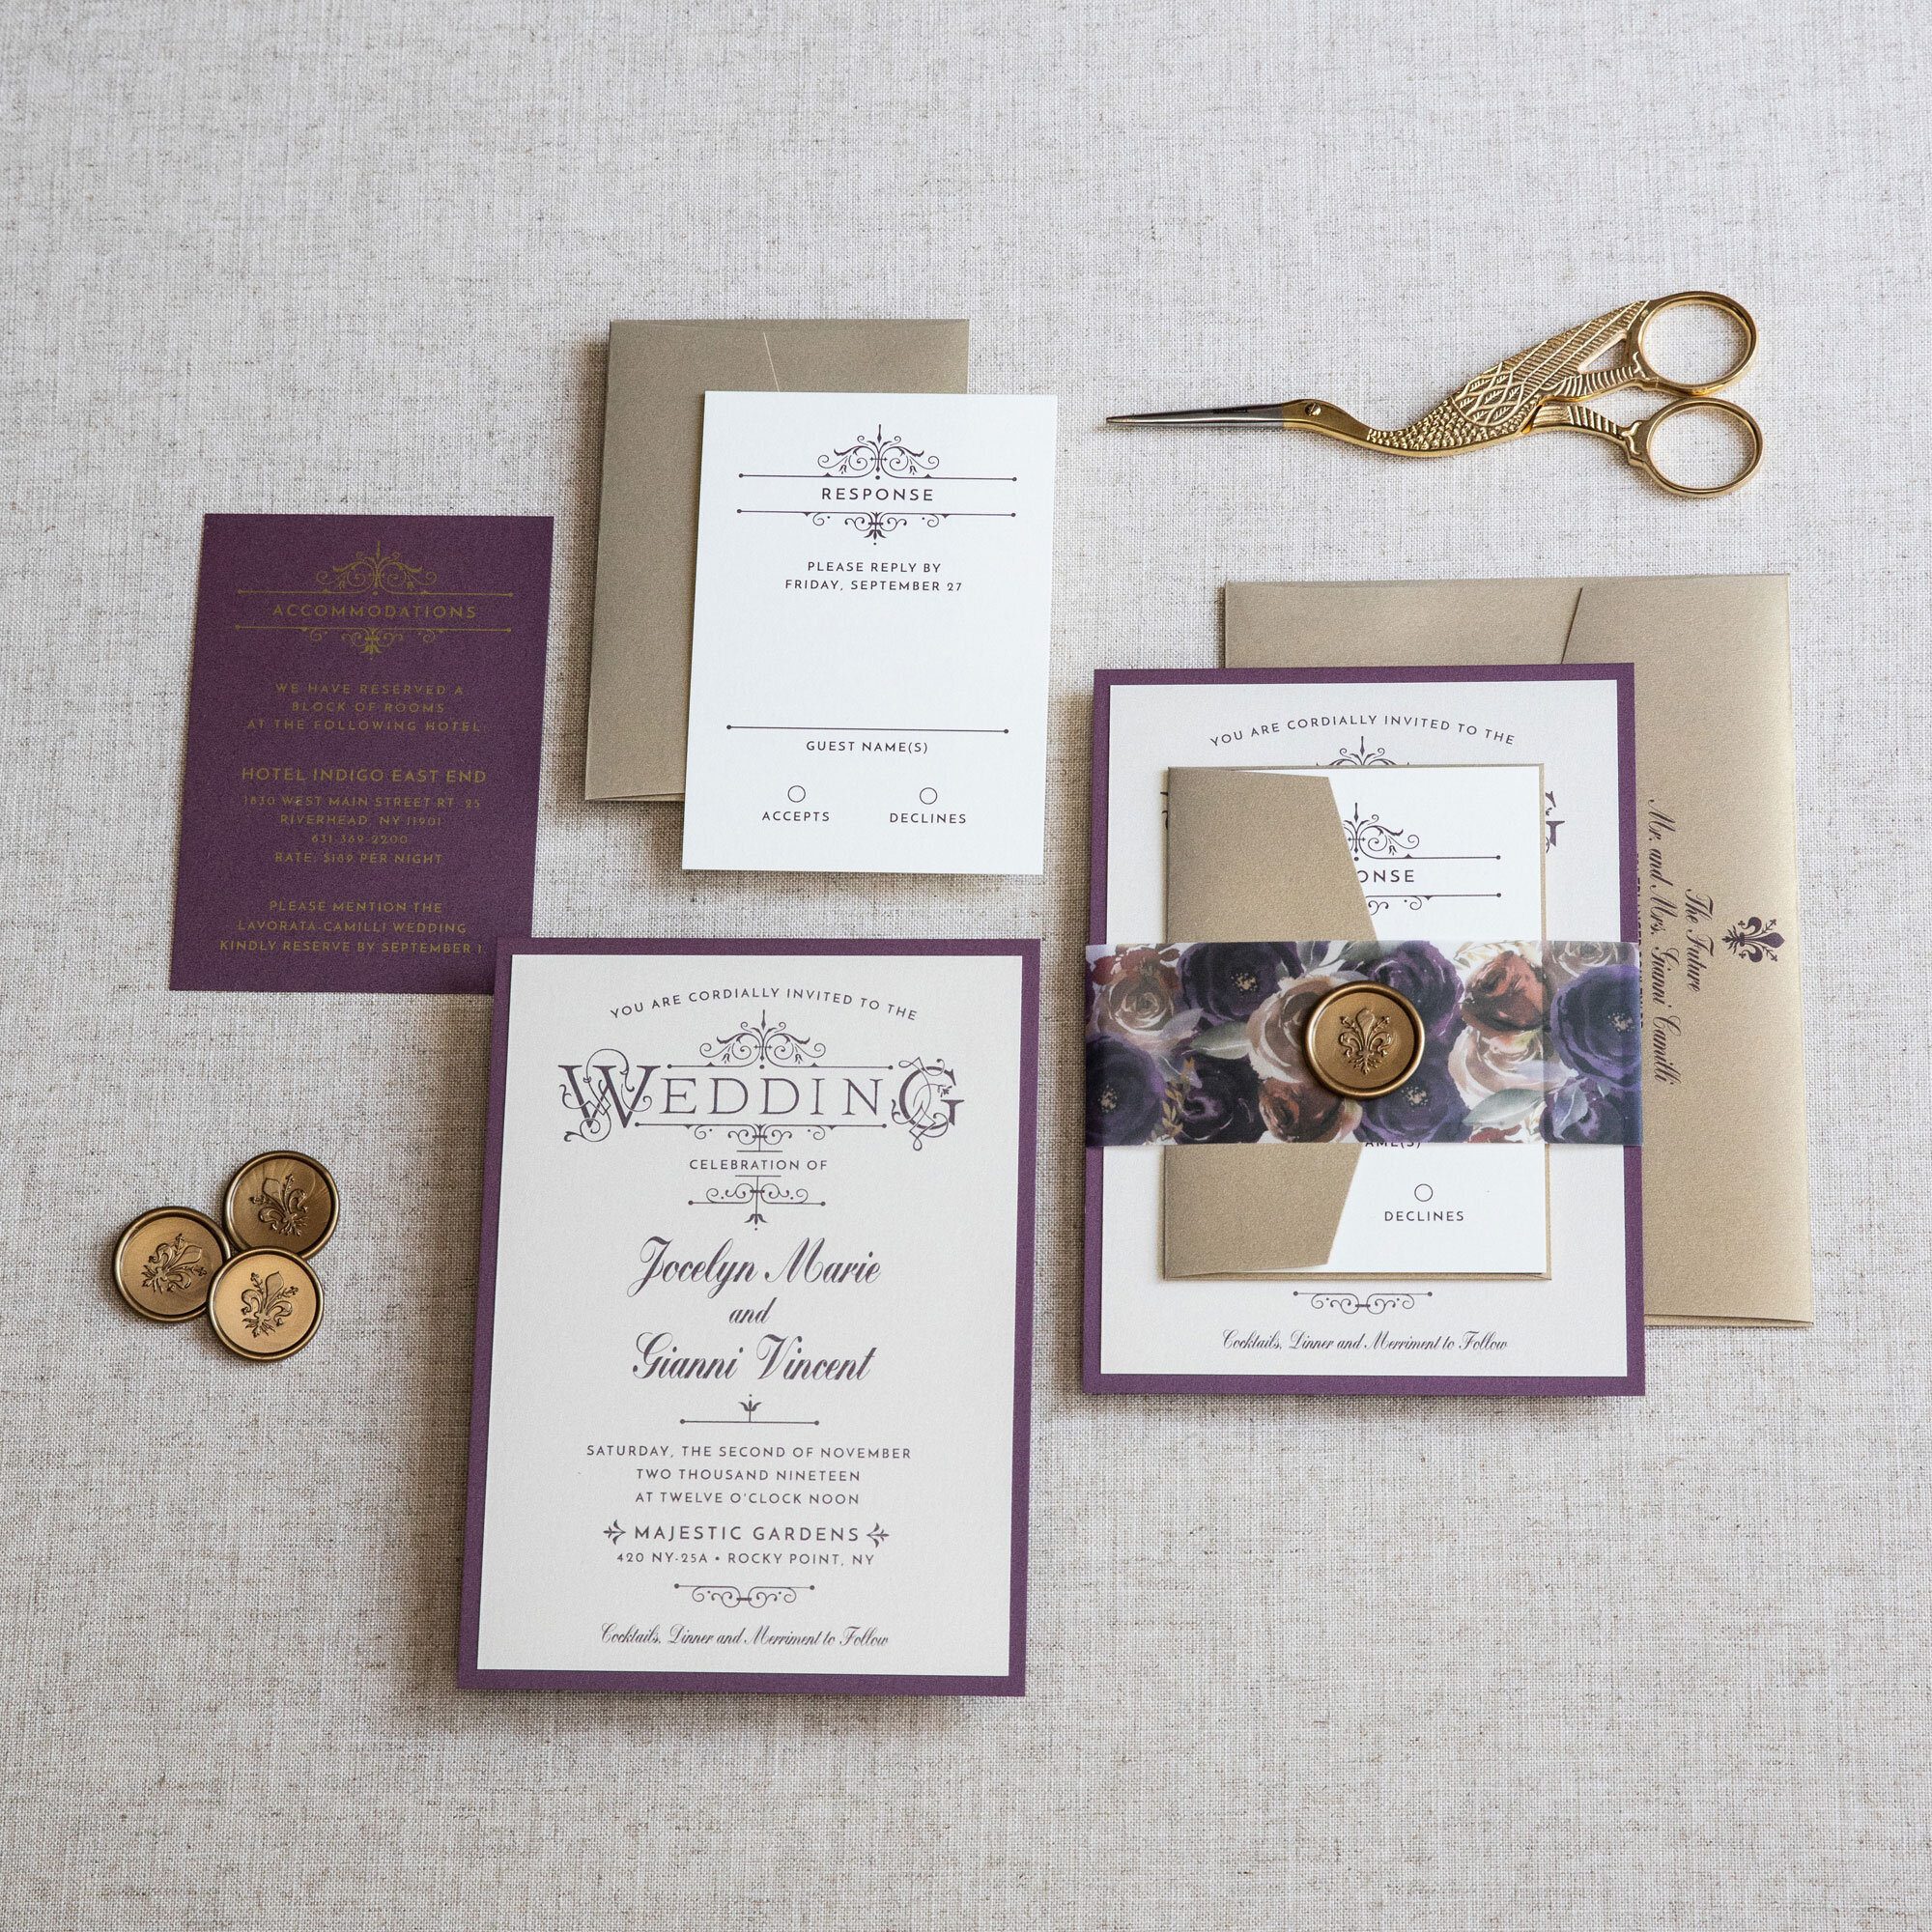 robedeedesign-camilliweddinginvitation-jeanboucherphotography-majesticgardens.jpg